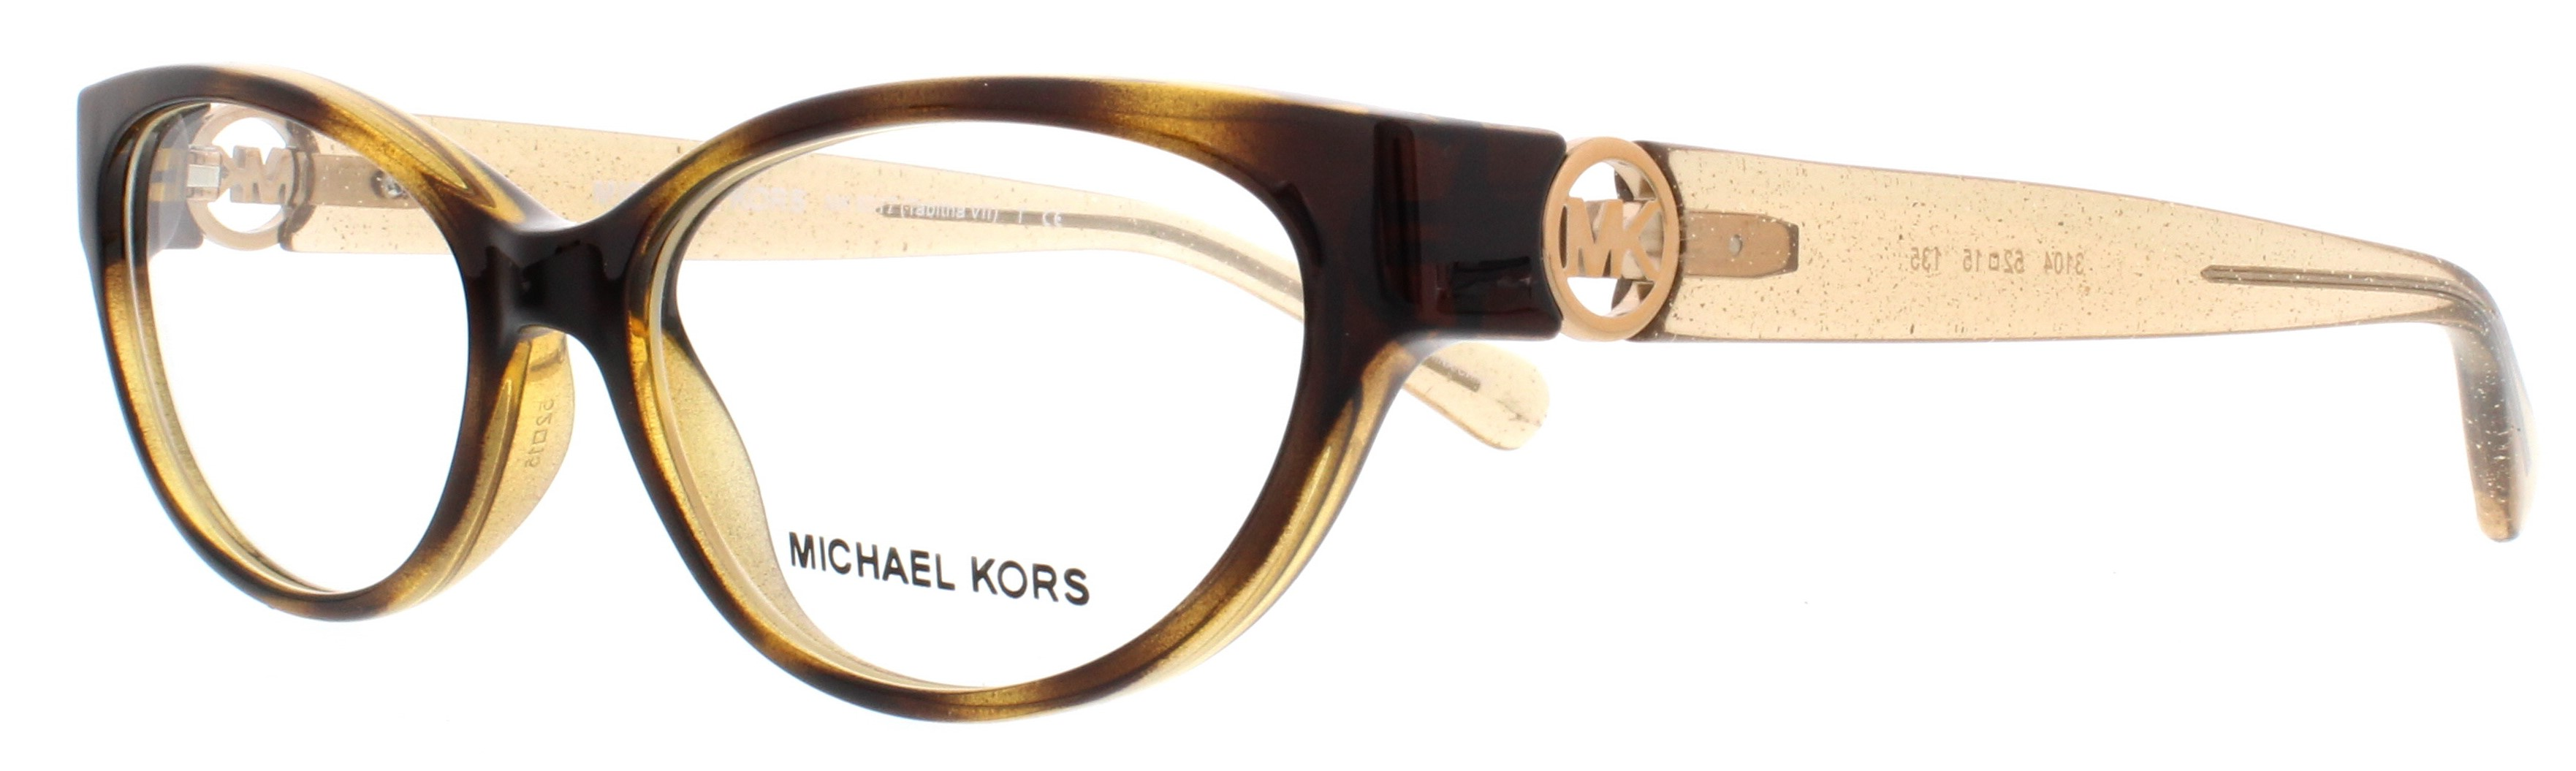 Picture of Michael Kors MK8017 Tabitha VII